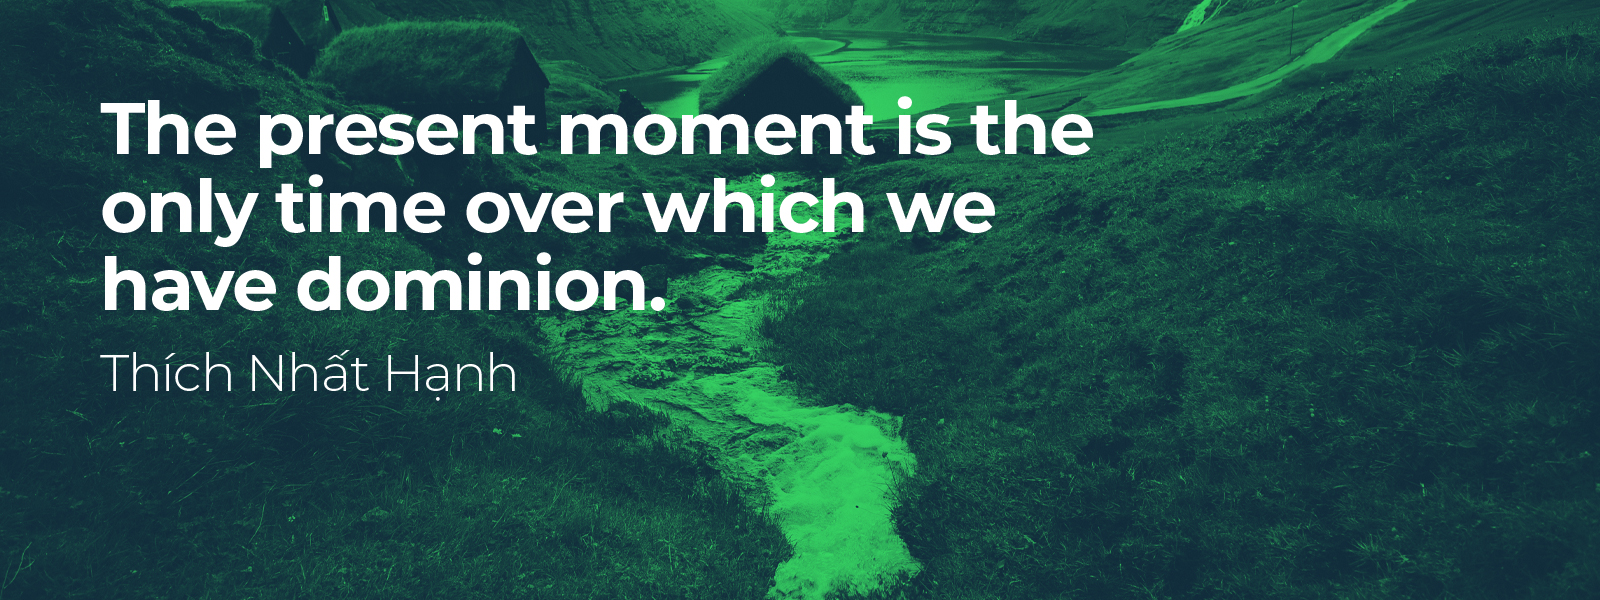 The present moment is the only time over which we have dominion - Thich Nhat Hanh